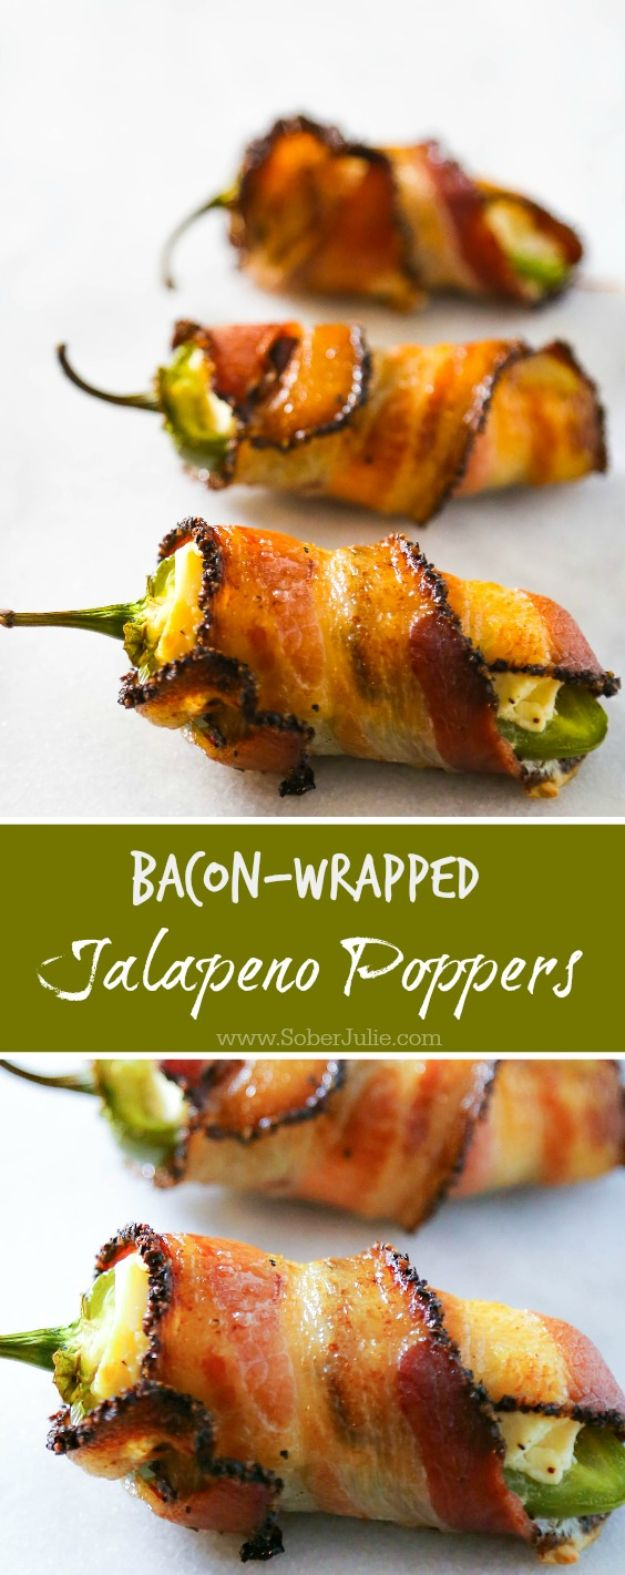 Best Mexican Food Recipes - Bacon Wrapped Jalapeno Popper – Homemade Authentic Mexican Version - Mexican Beef Soup - Authentic Mexican Foods and Recipe Ideas for Casseroles, Quesadillas, Tacos, Appetizers, Tamales, Enchiladas, Crockpot, Chicken, Beef and Healthy Foods - Desserts and Dessert Ideas Like Churros , Flan amd Sopapillas #recipes #mexicanfood #mexicanrecipes #recipeideas #mexicandishes http://diyjoy.com/mexican-food-recipes